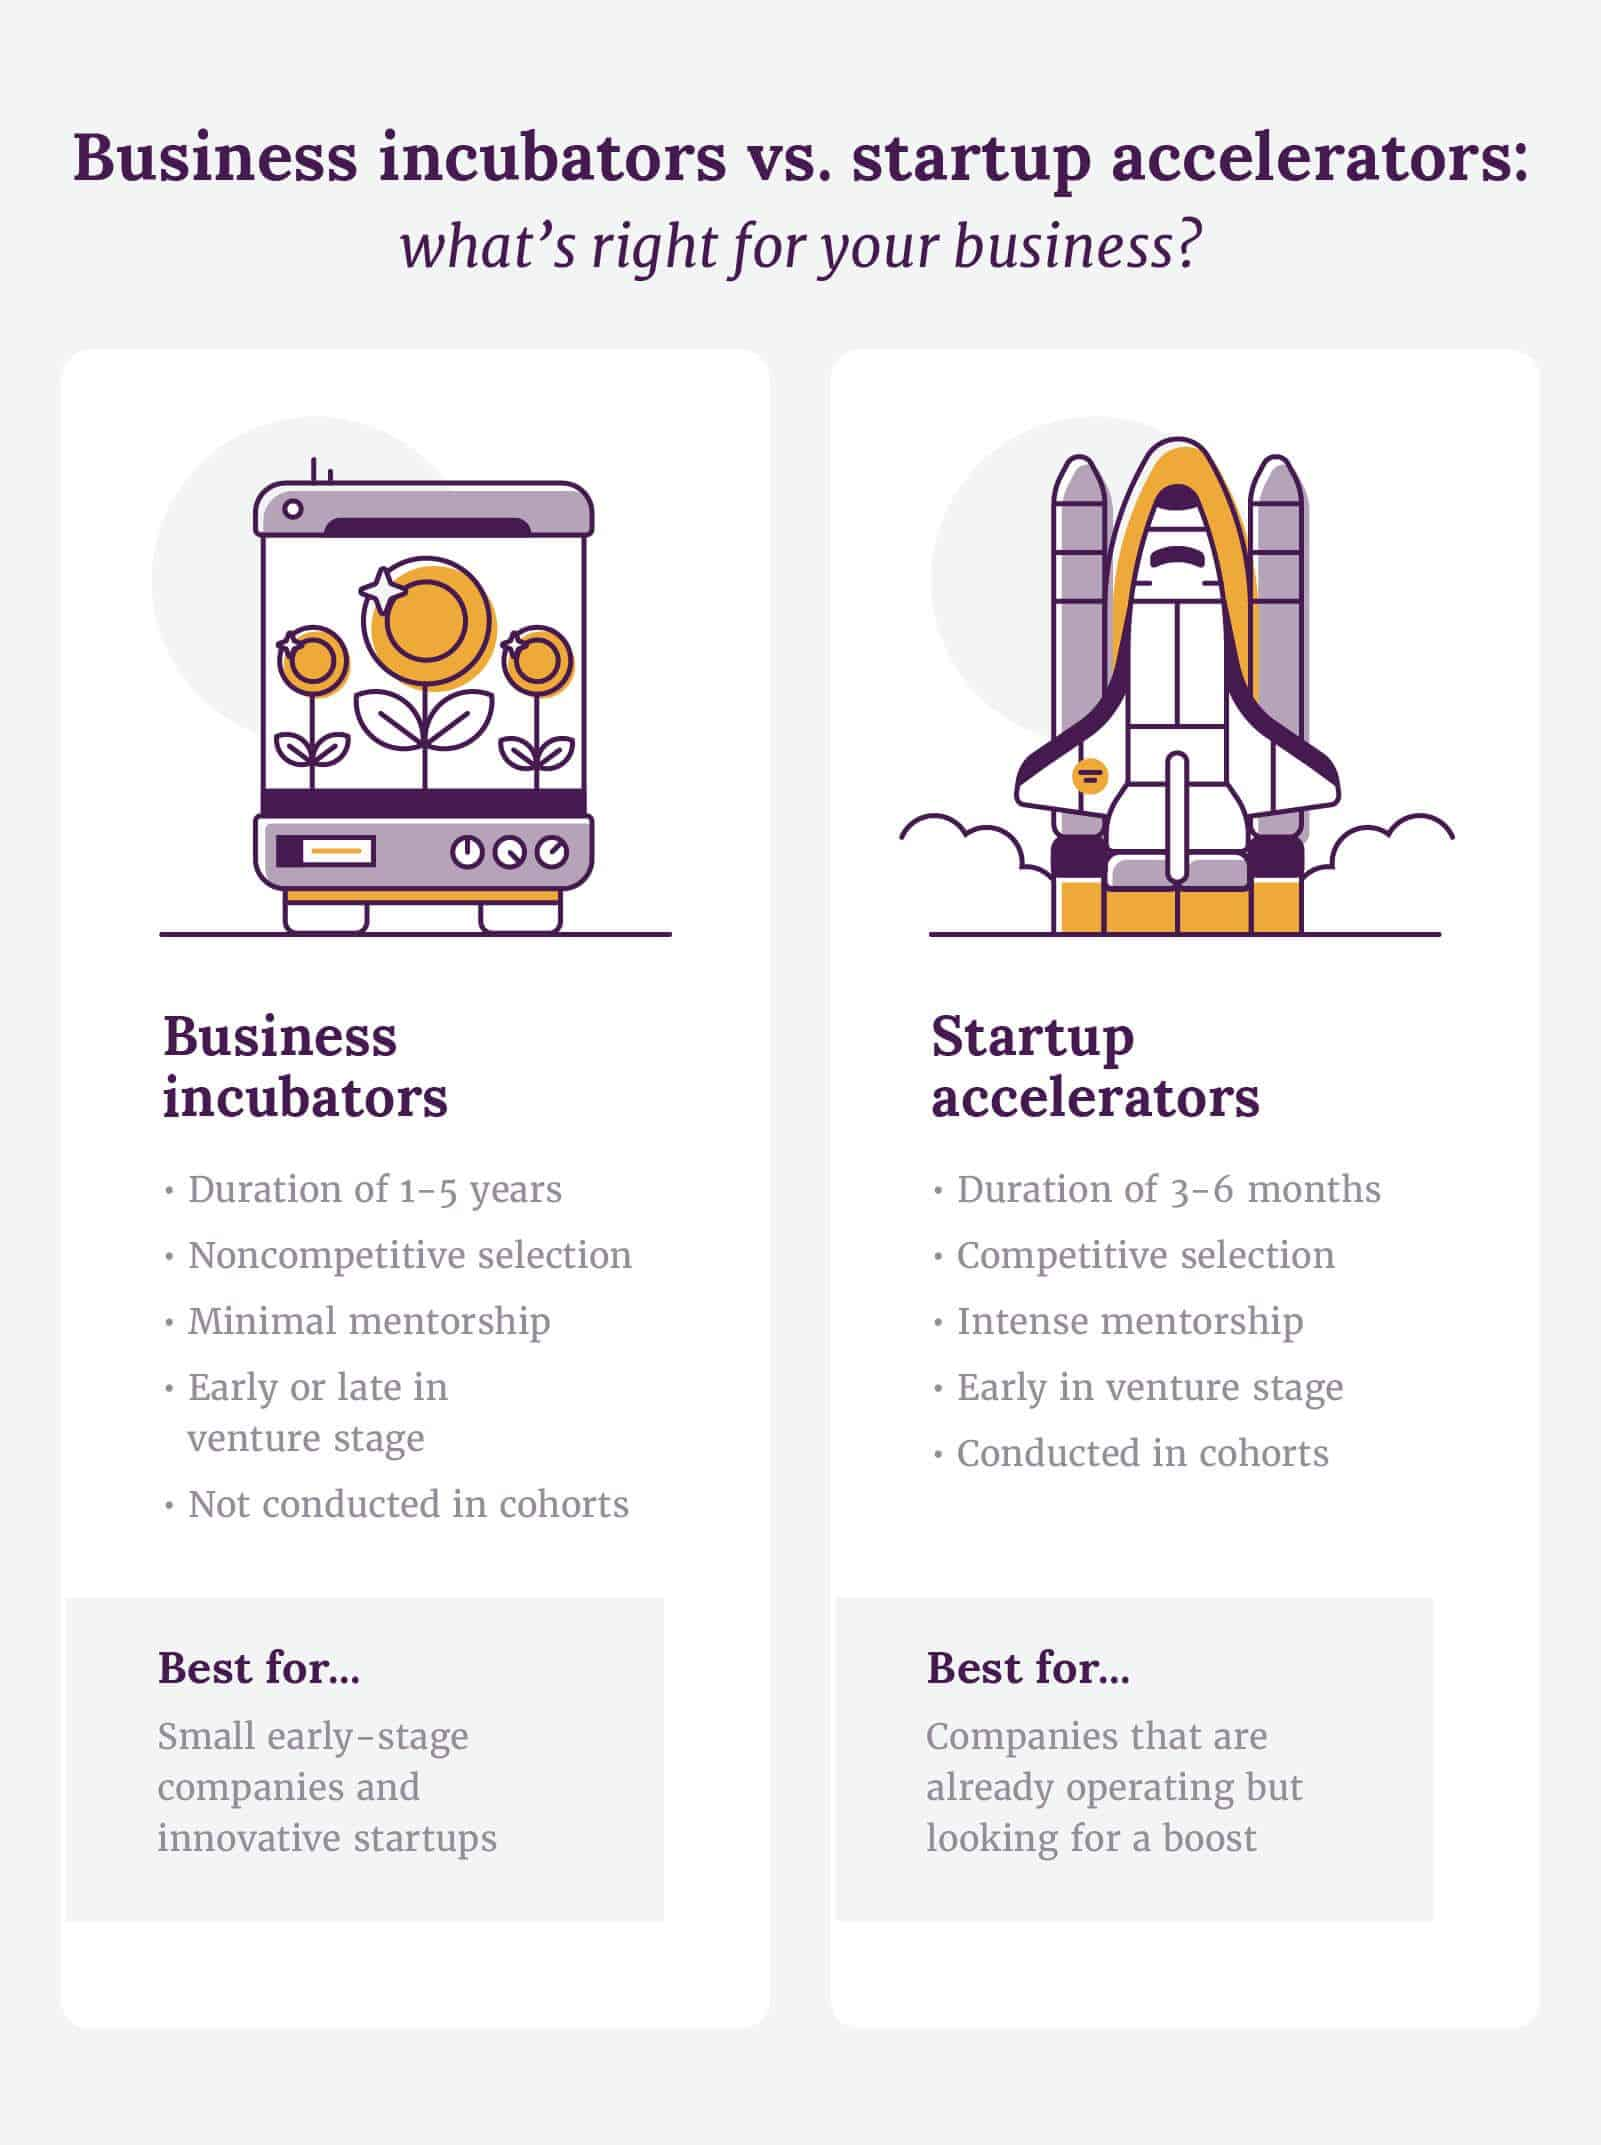 Business incubators vs. startup accelerators: what's right for your business